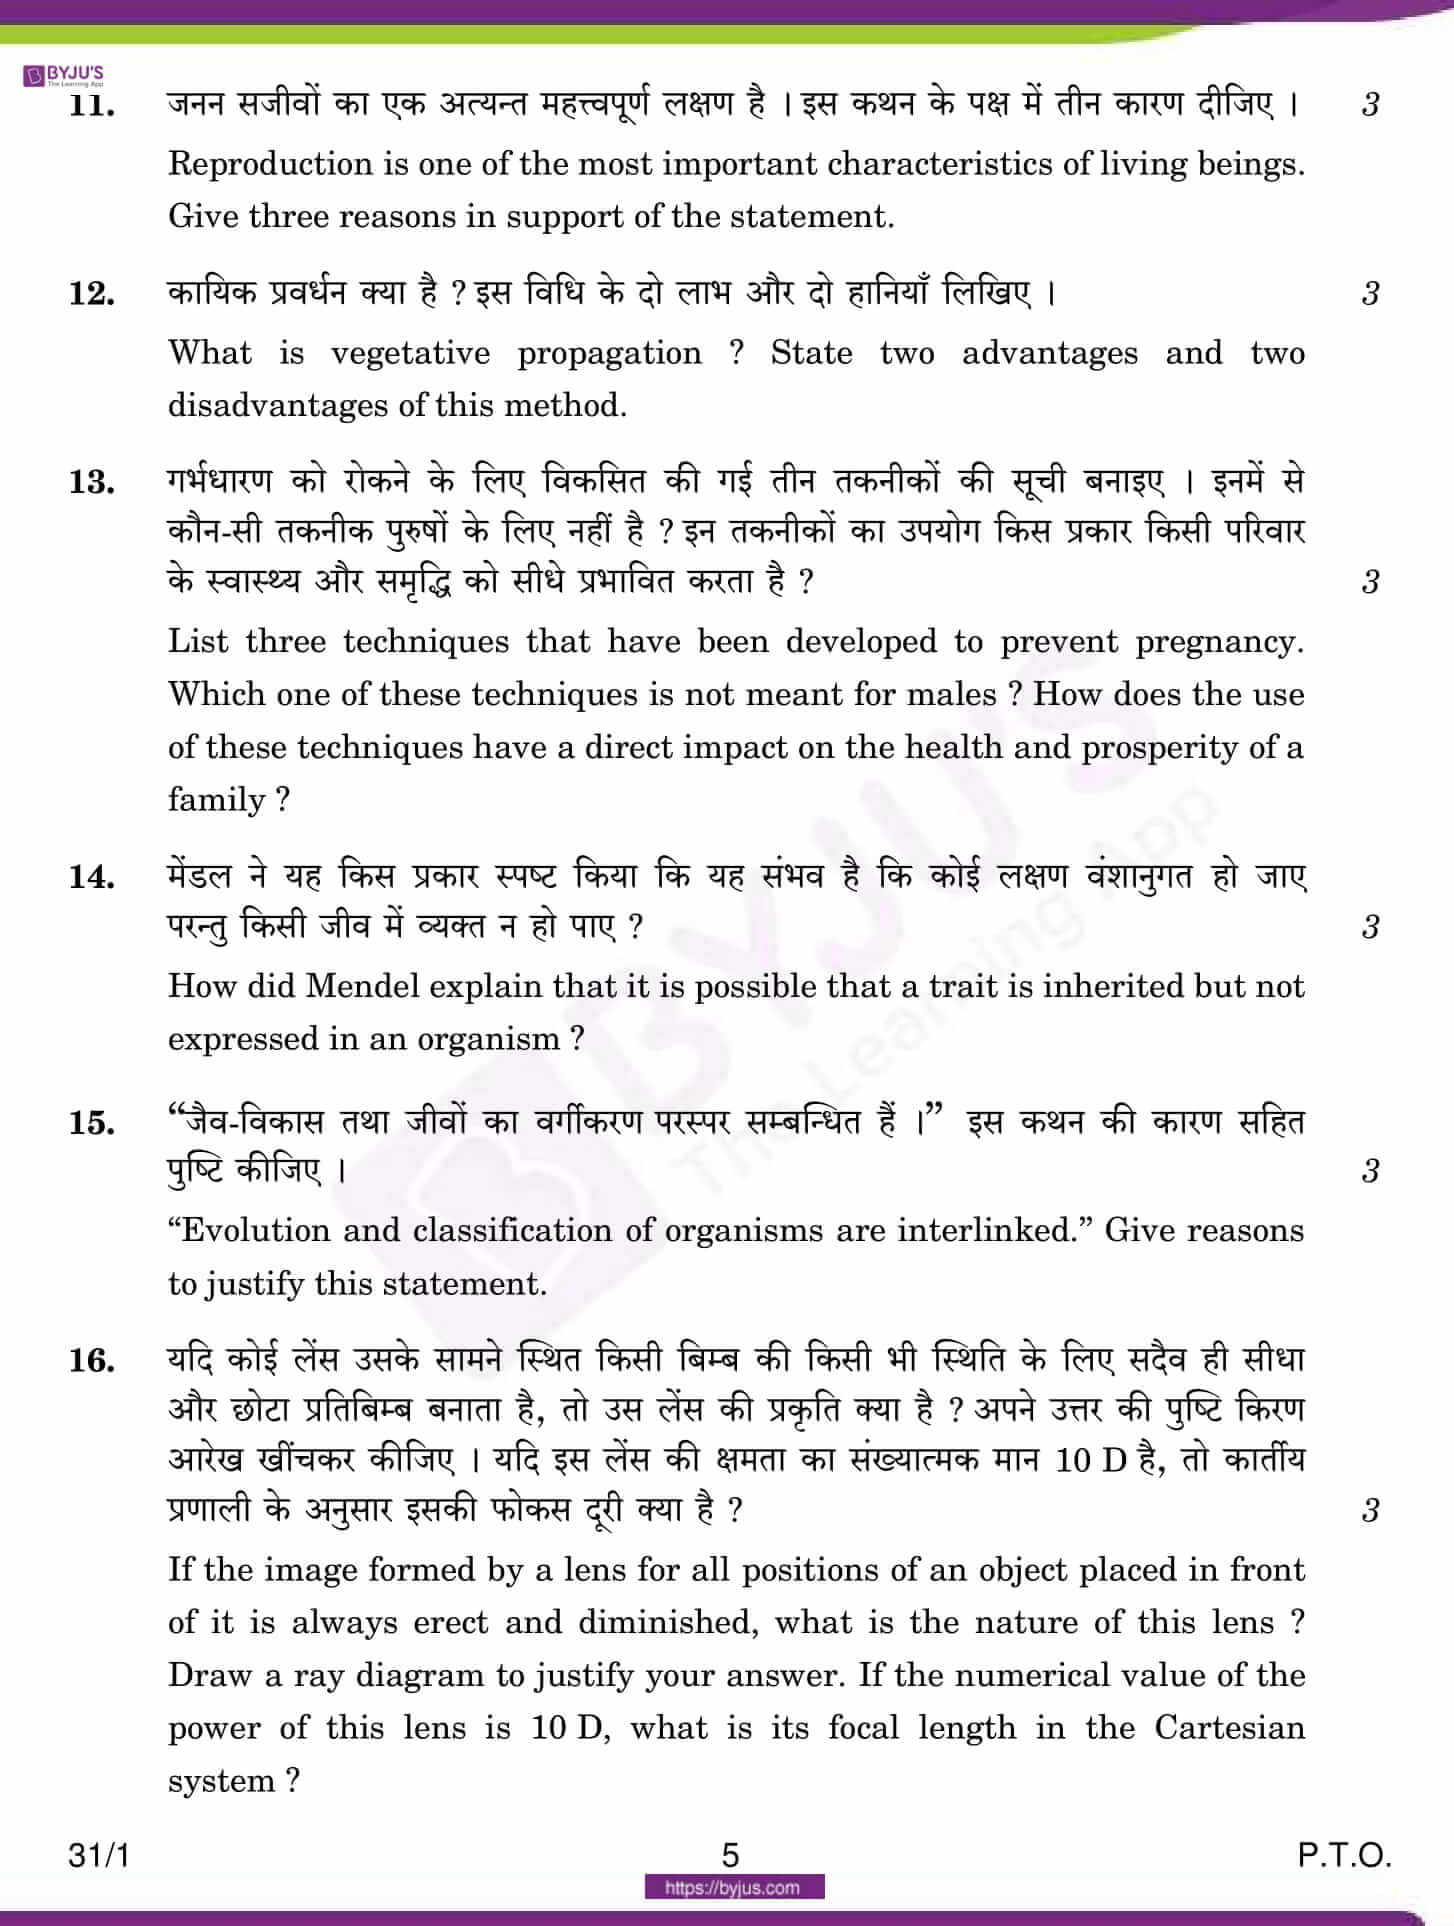 cbse class 10 science question paper 2017